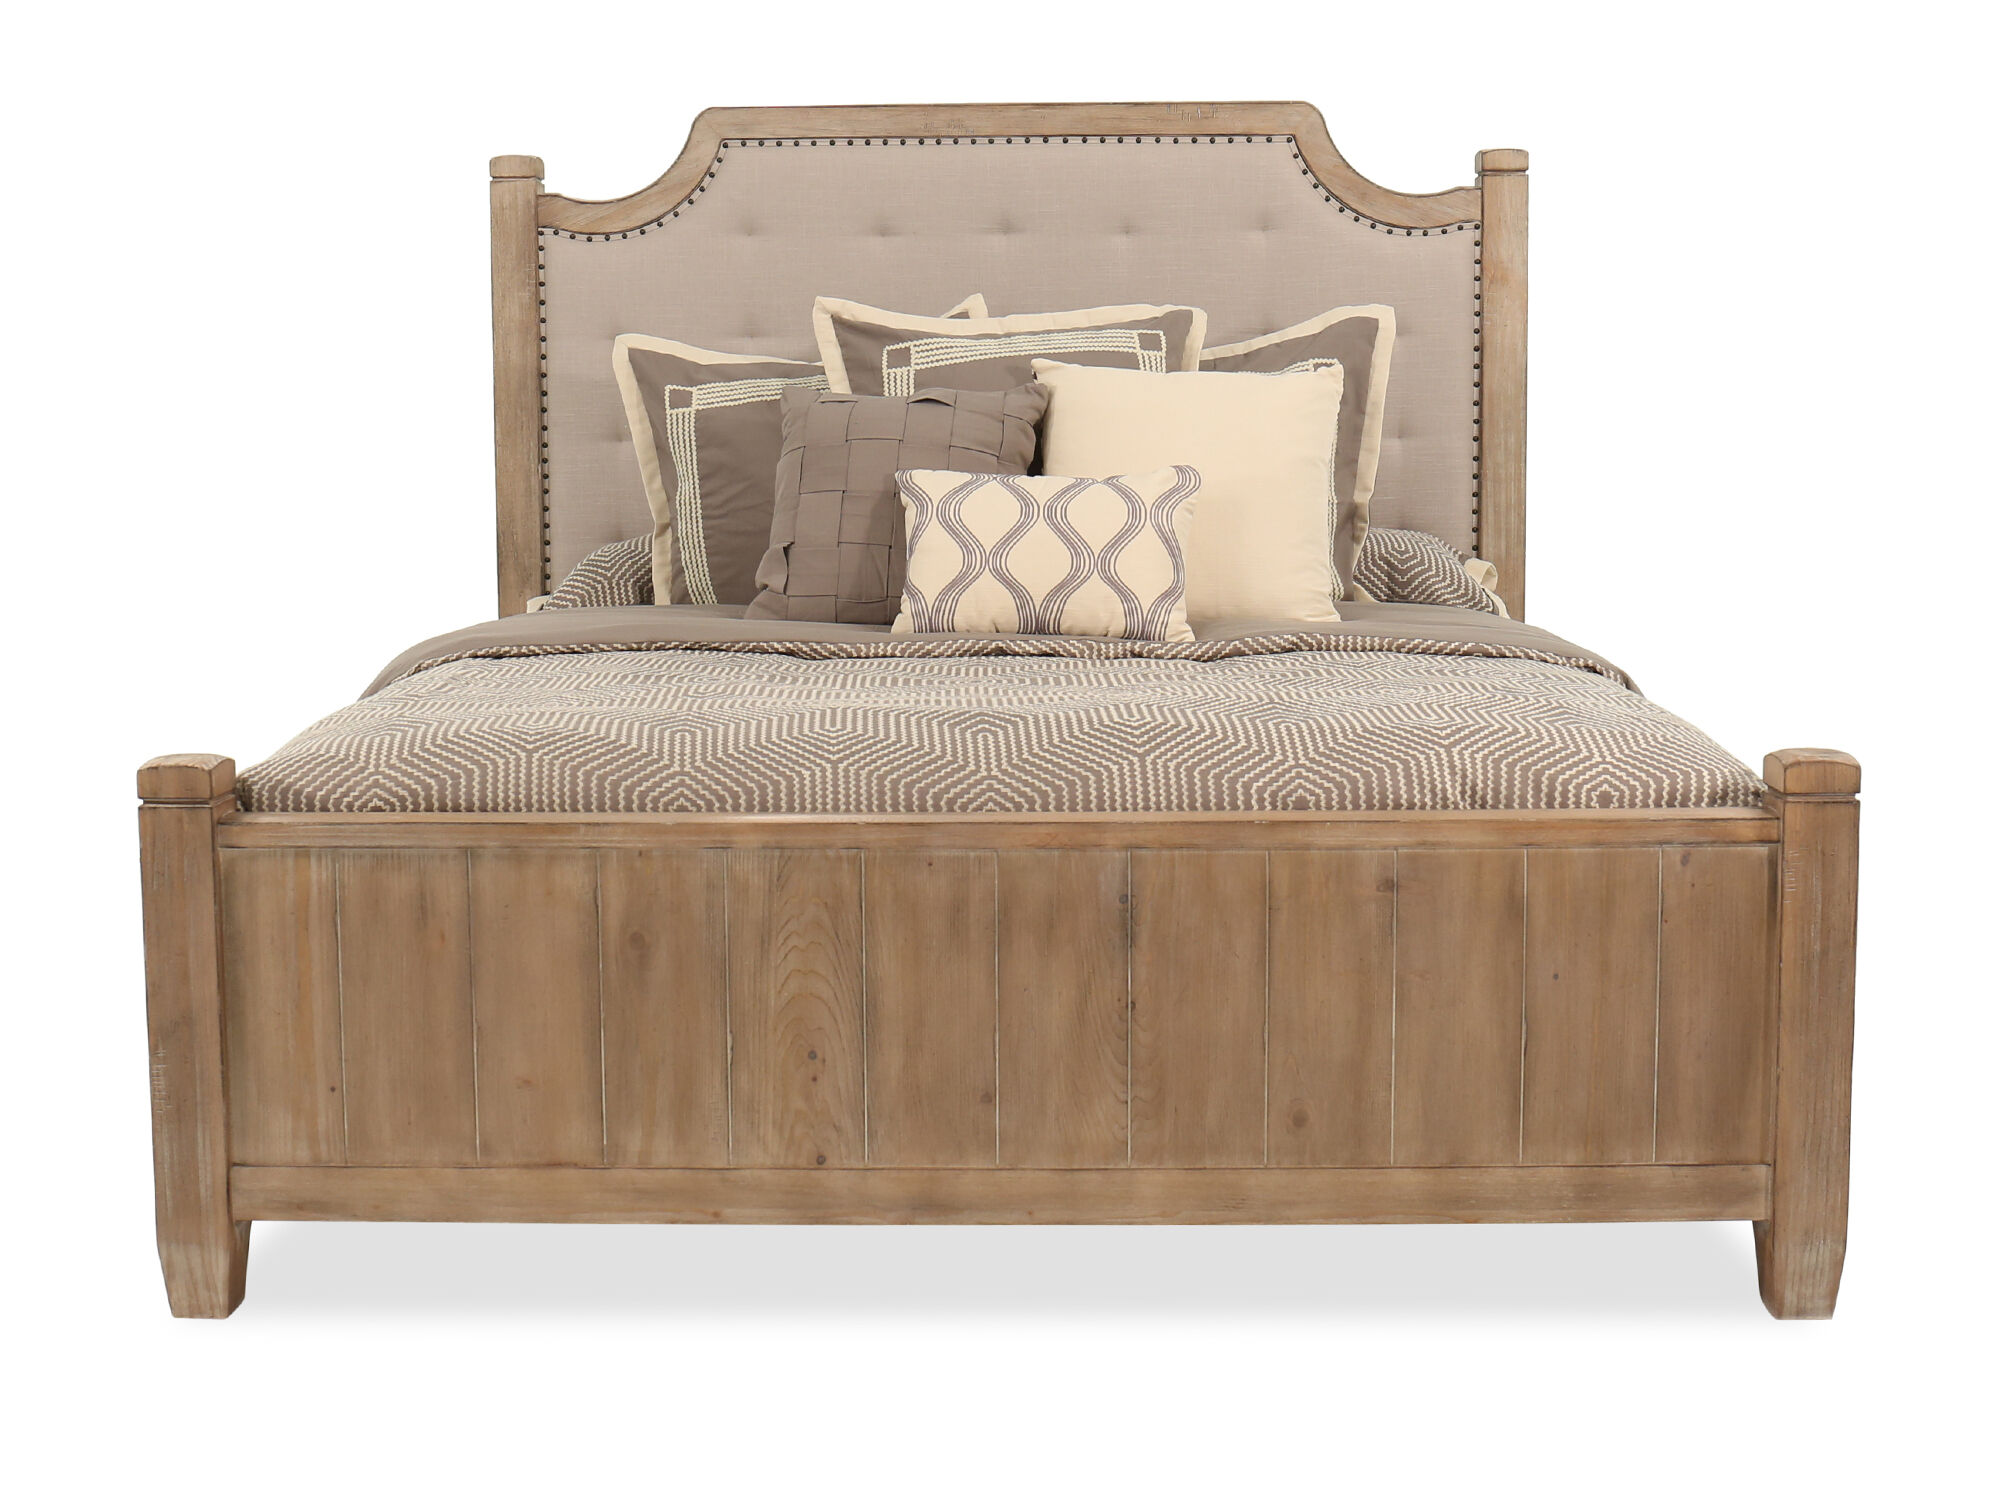 60db86d86c4 Casual Tufted Bed in Cypress